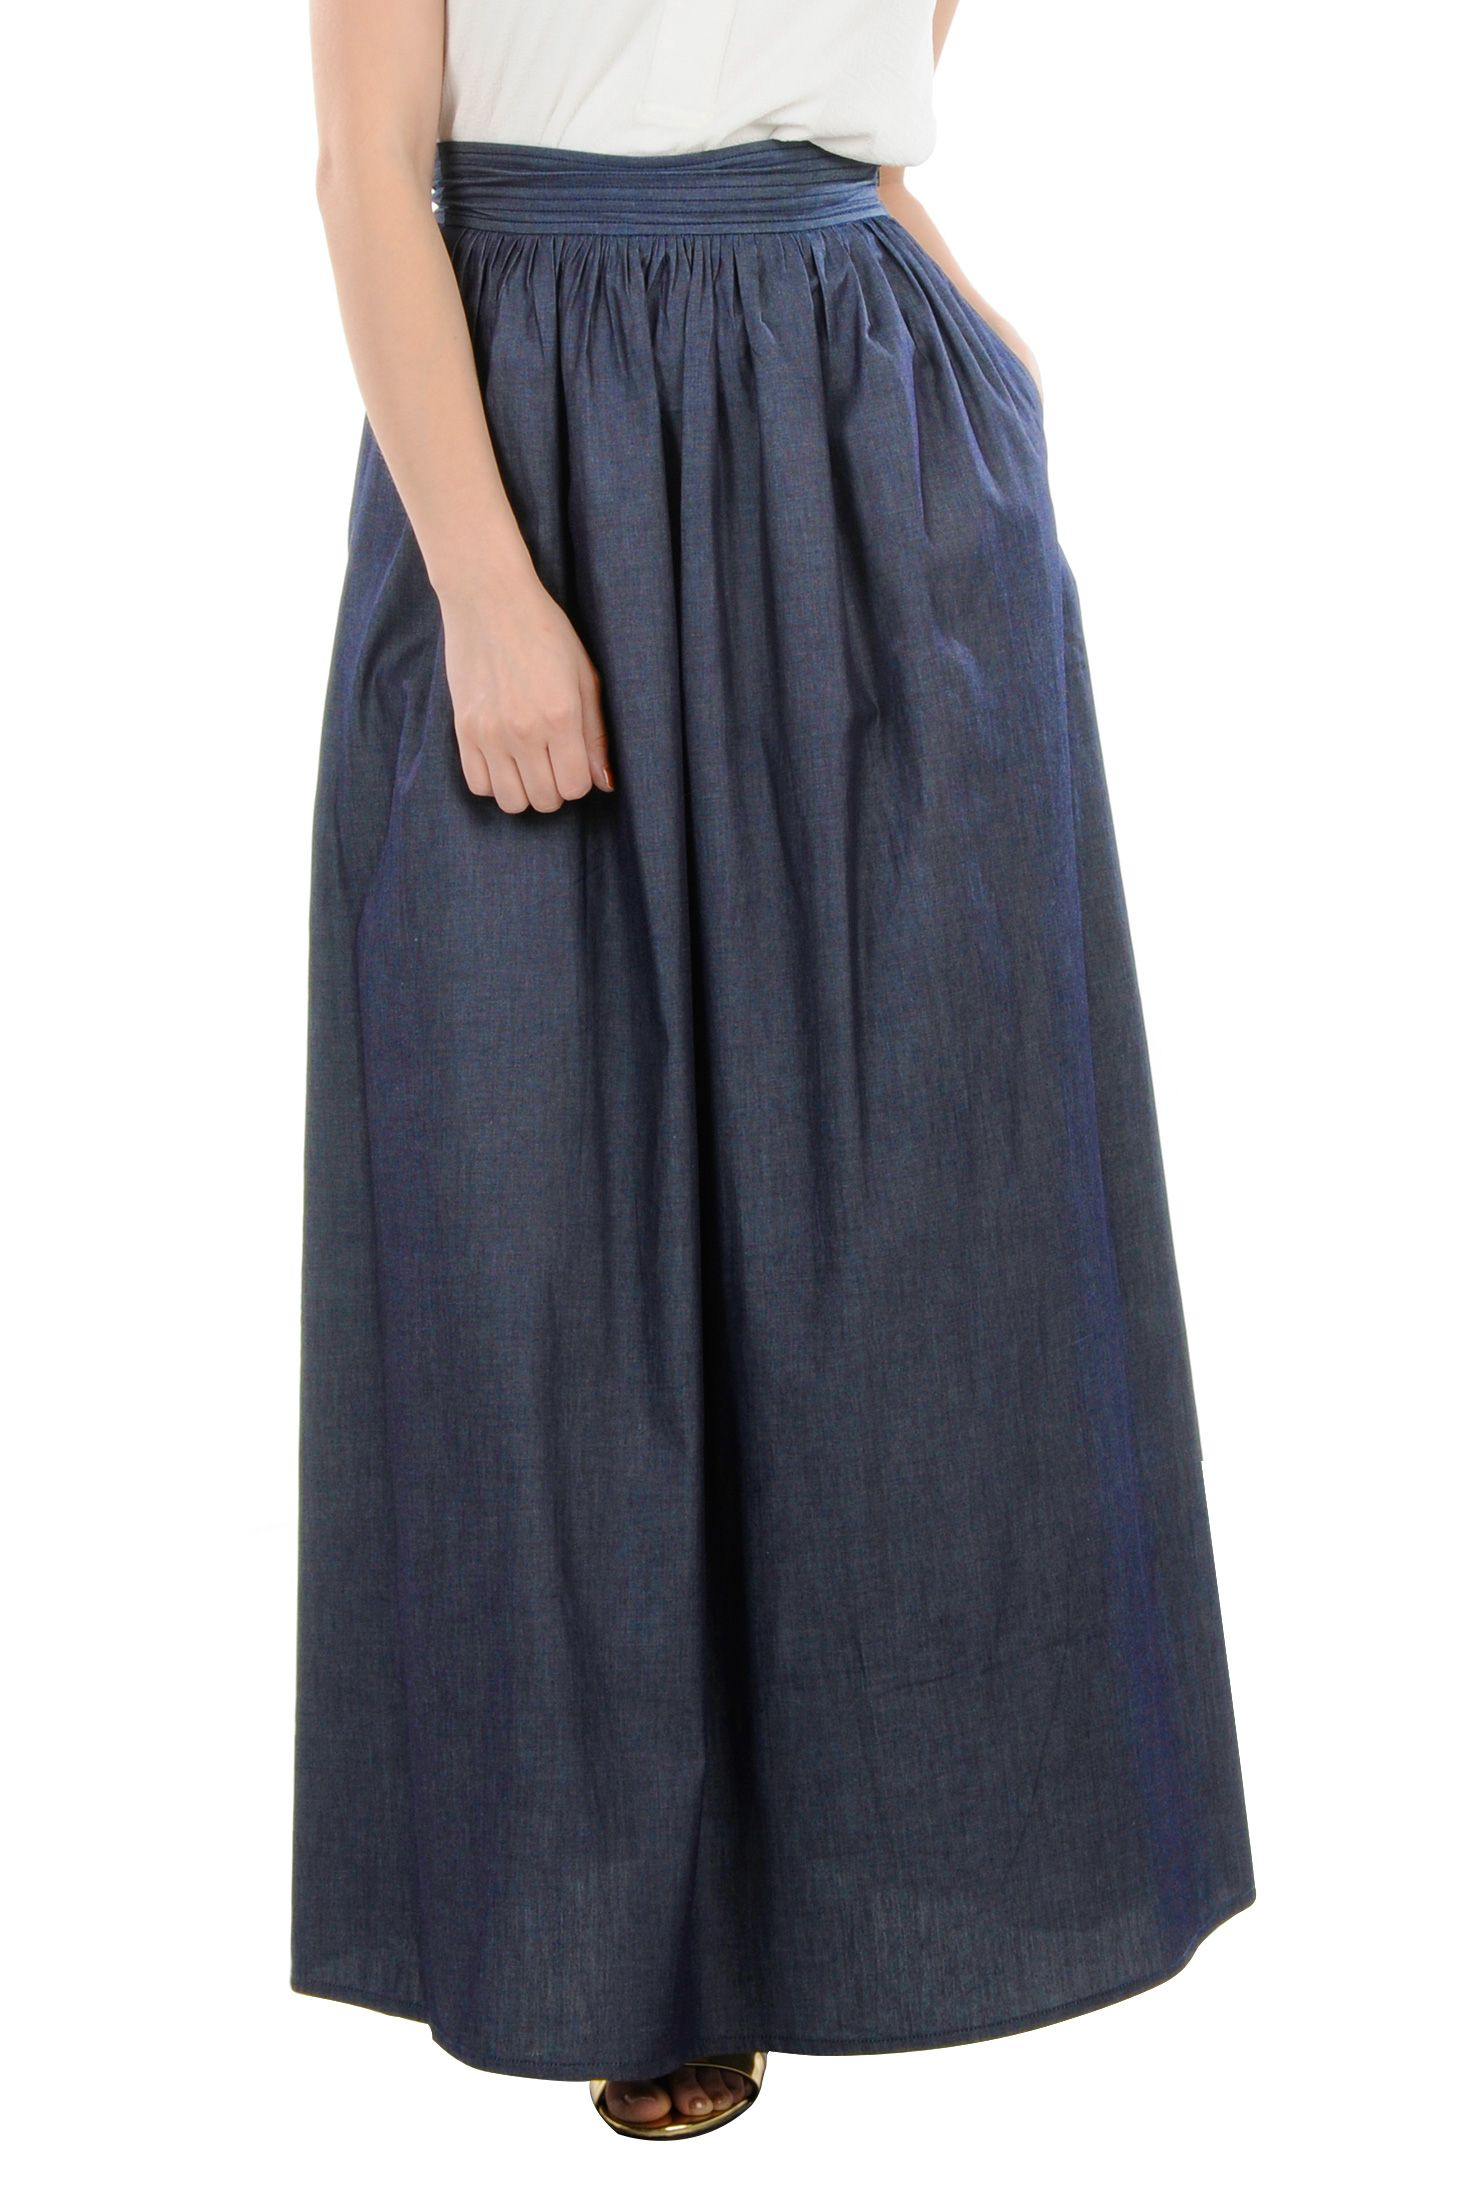 65b2987f24 Chambray Denim Long Skirts, Cotton Chambray Ruched Pleats Maxi Skirts  Womens Designer Skirts - Women's Black Skirt, White Skirt, Denim chambray  Skirt, ...